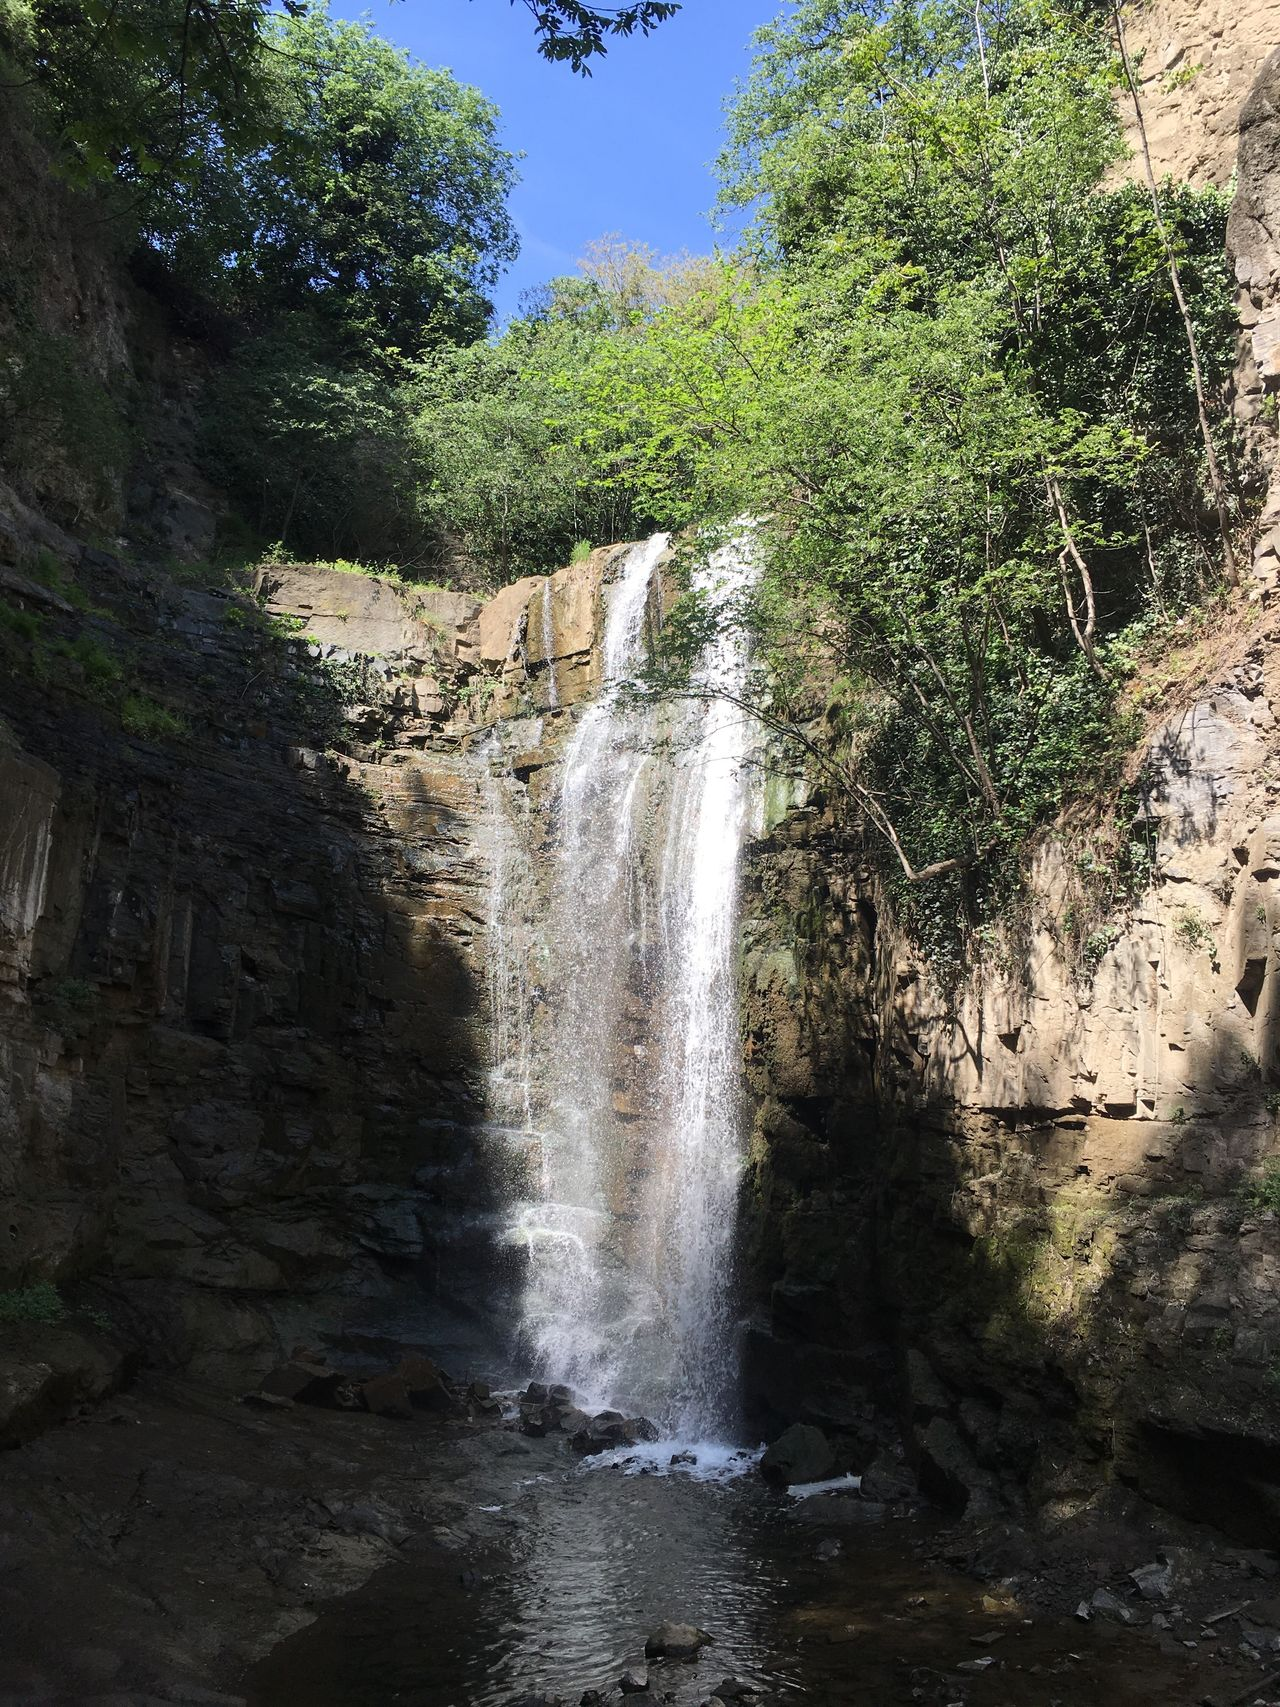 Waterfall Nature Scenics Beauty In Nature Flowing Water Rock Formation Water Rock - Object Tree No People Day Outdoors Tranquil Scene Motion Travel Destinations Cliff Sky